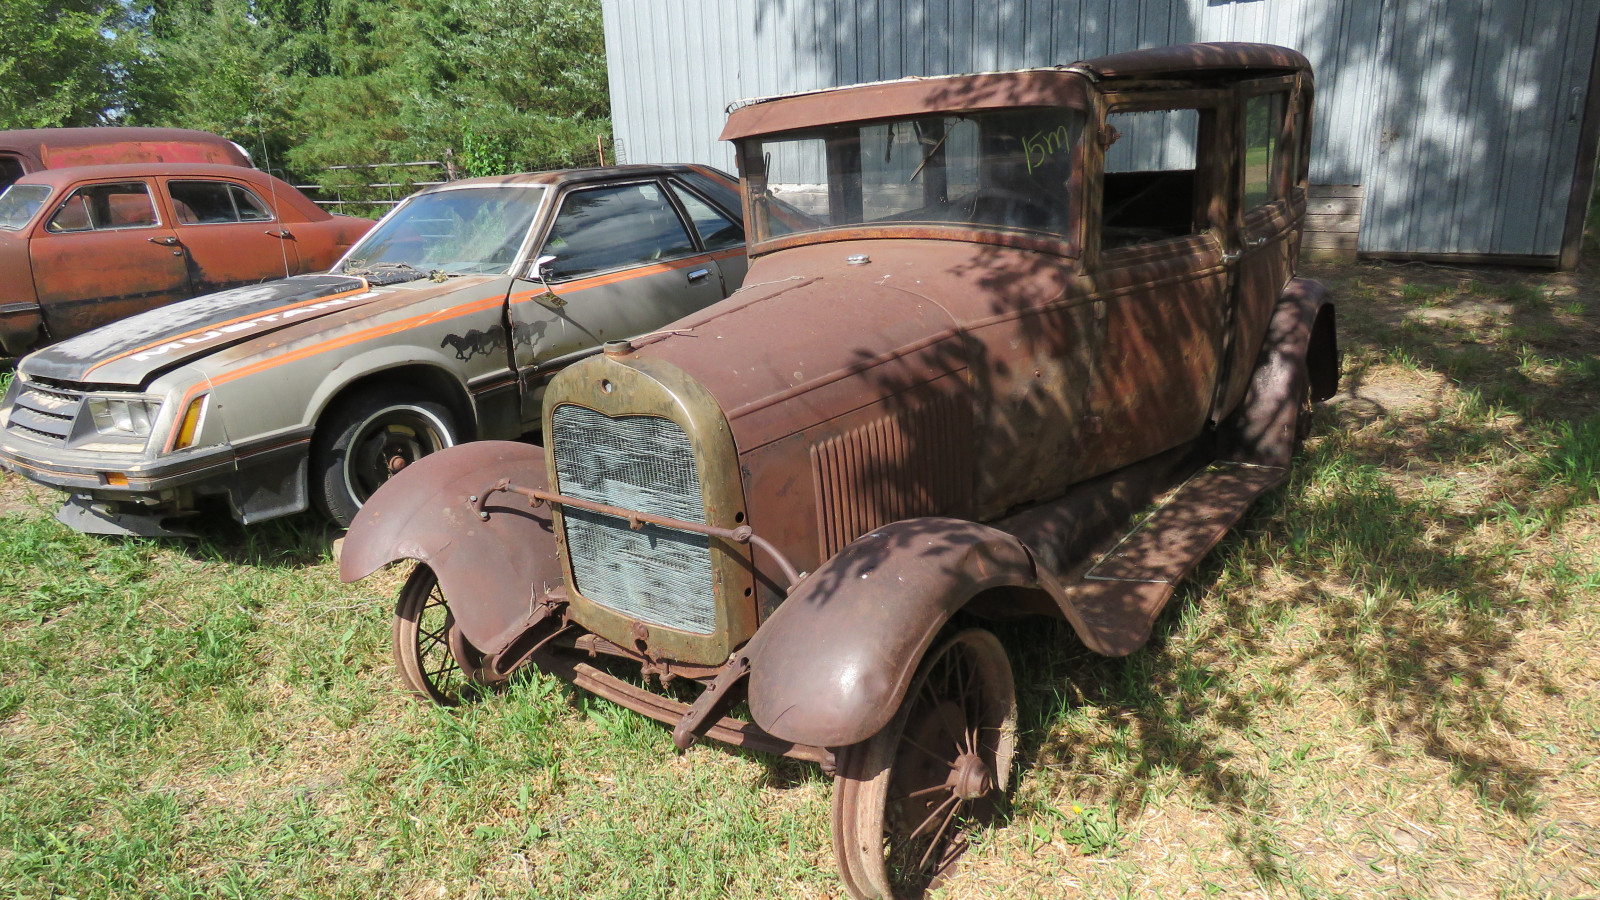 1928 Ford Model A 4dr Sedan for Rod or Restore - Image 1